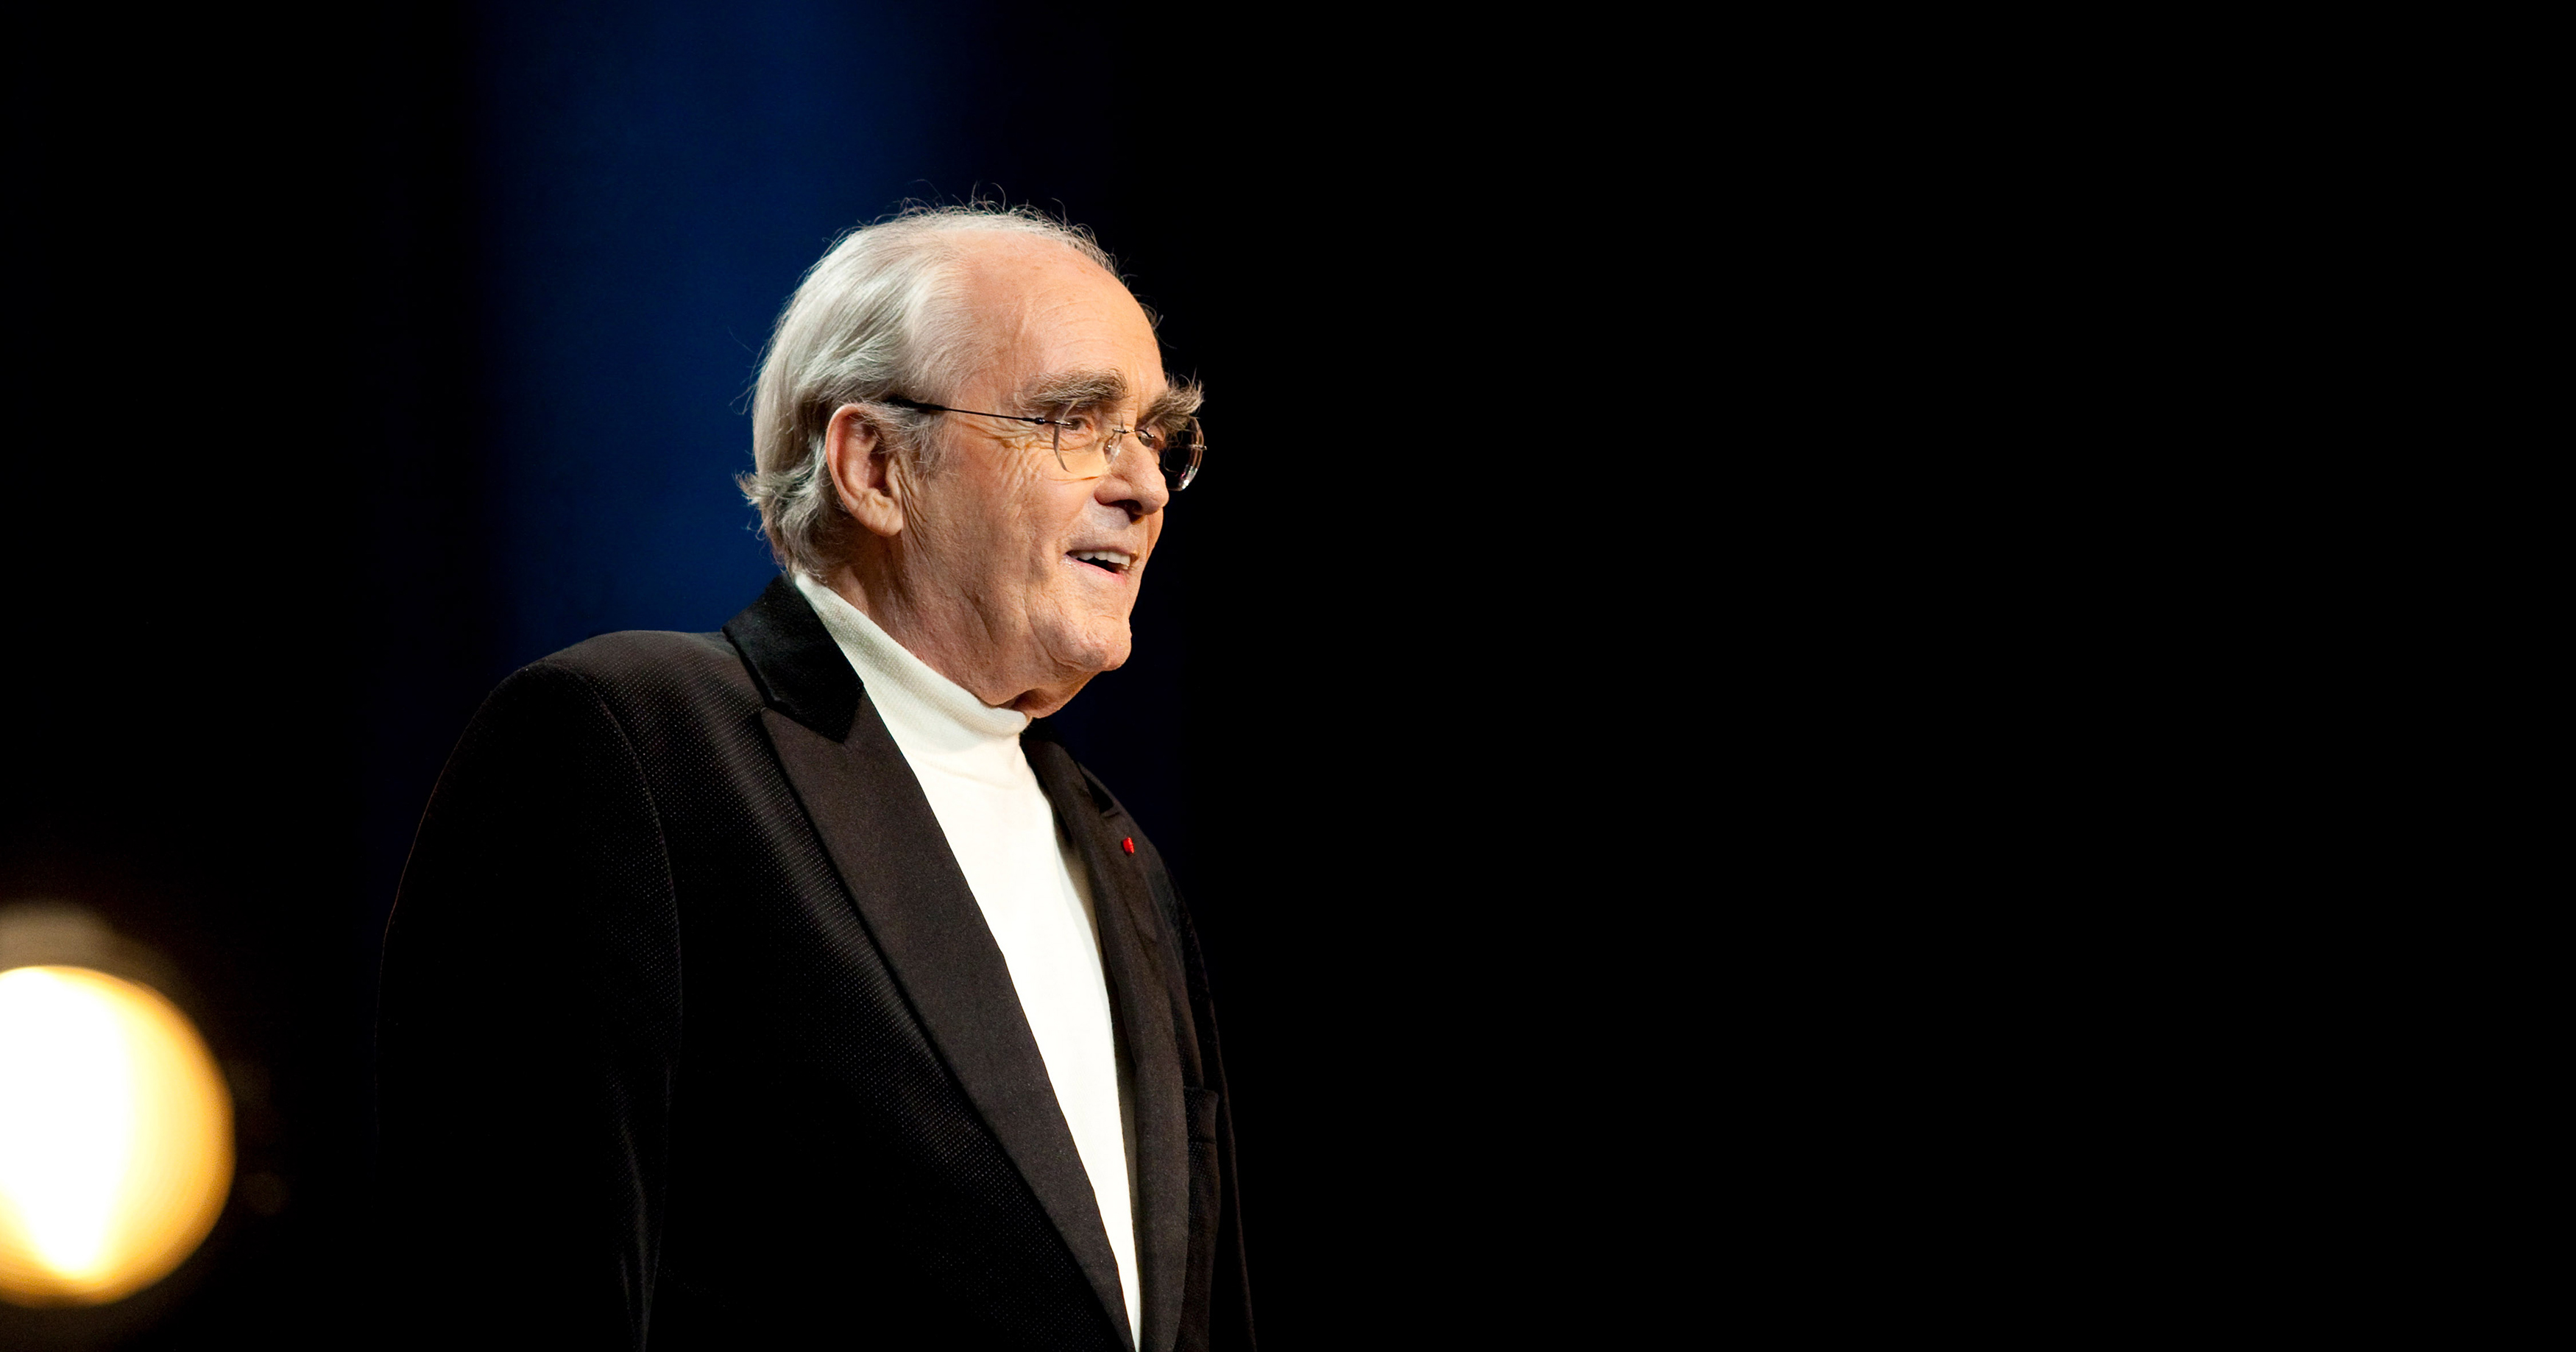 Michel Legrand, sans demi-mesure.